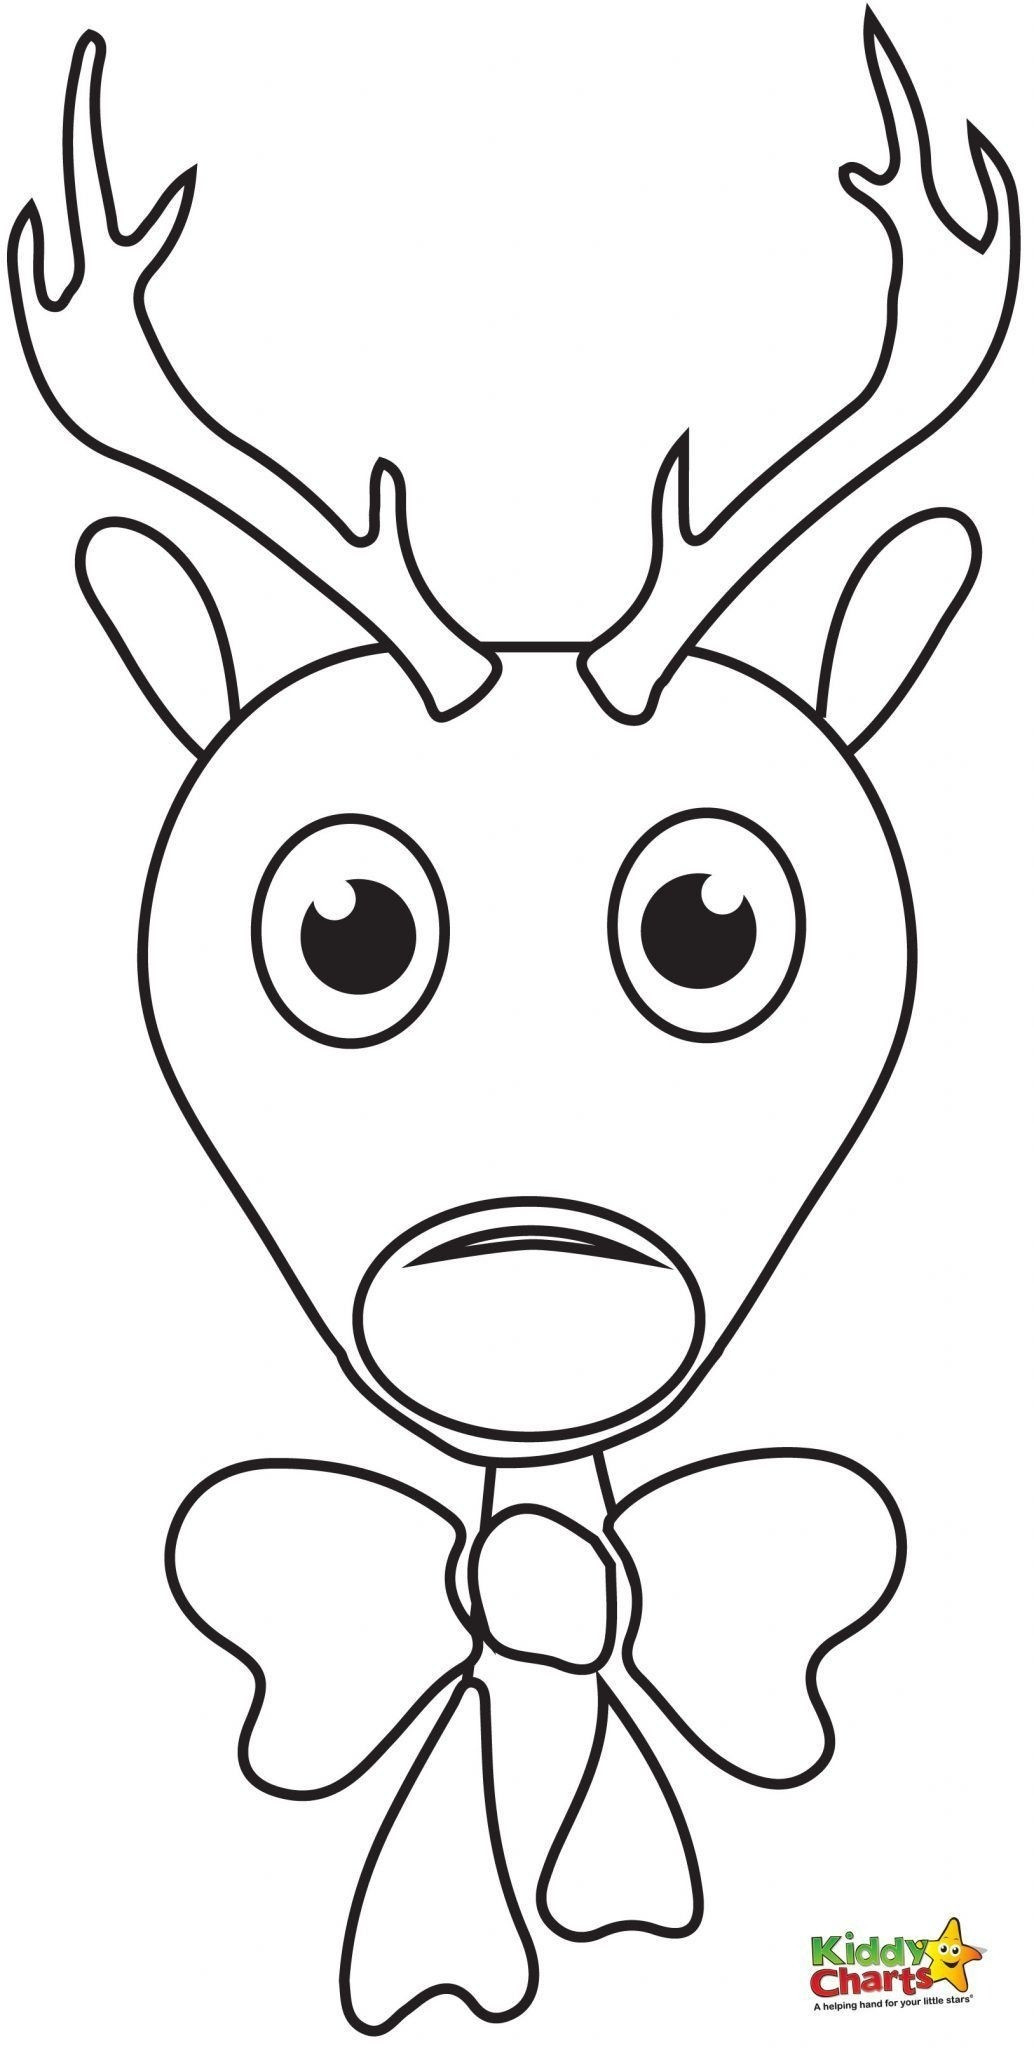 1034x2048 Reindeer Coloring Pages Lovely Rudolph The Red Nosed Bright Cute